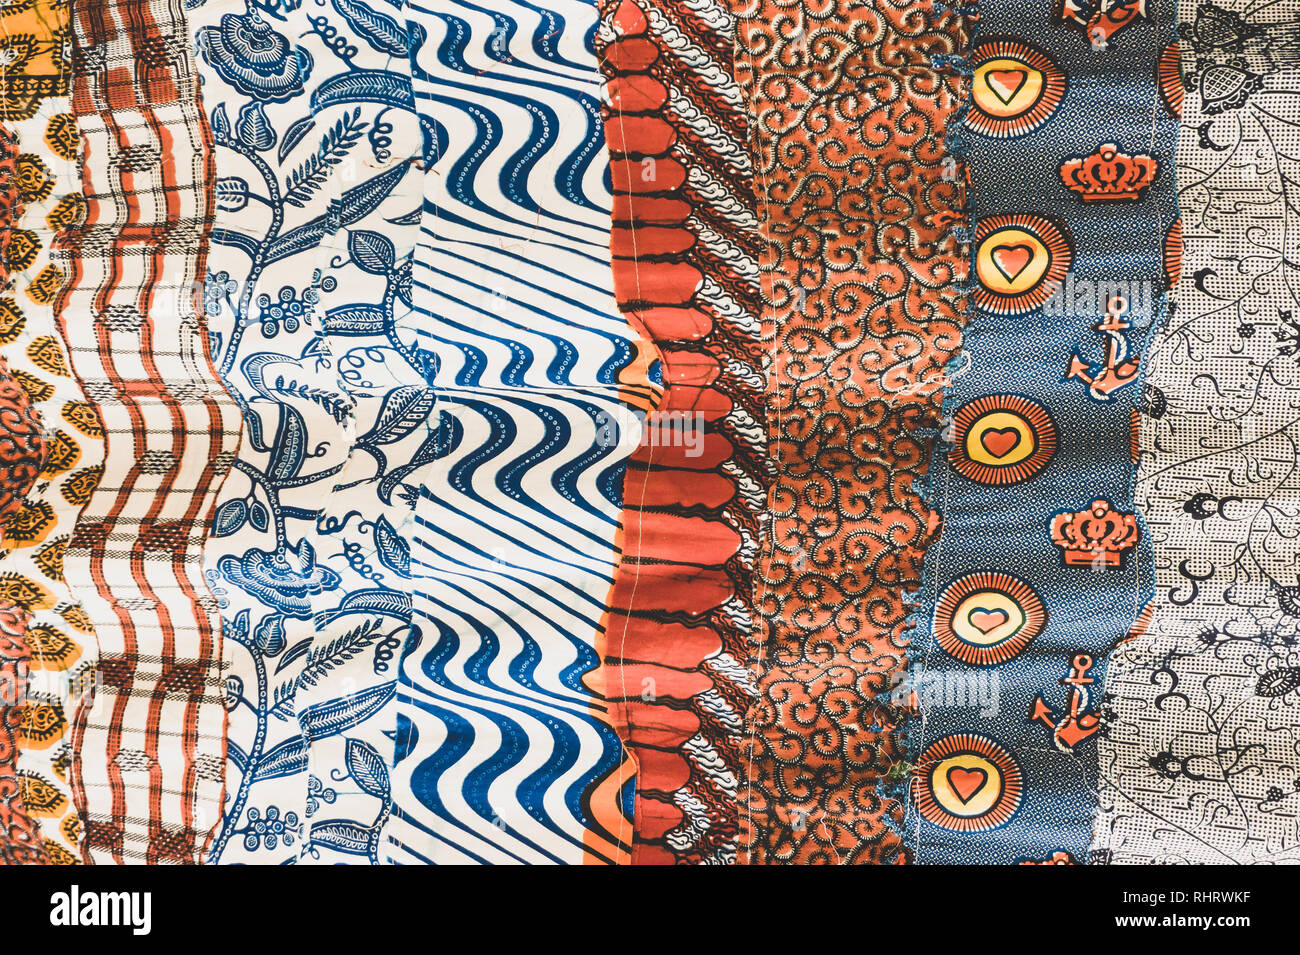 African Fabric Stock Photos & African Fabric Stock Images - Alamy